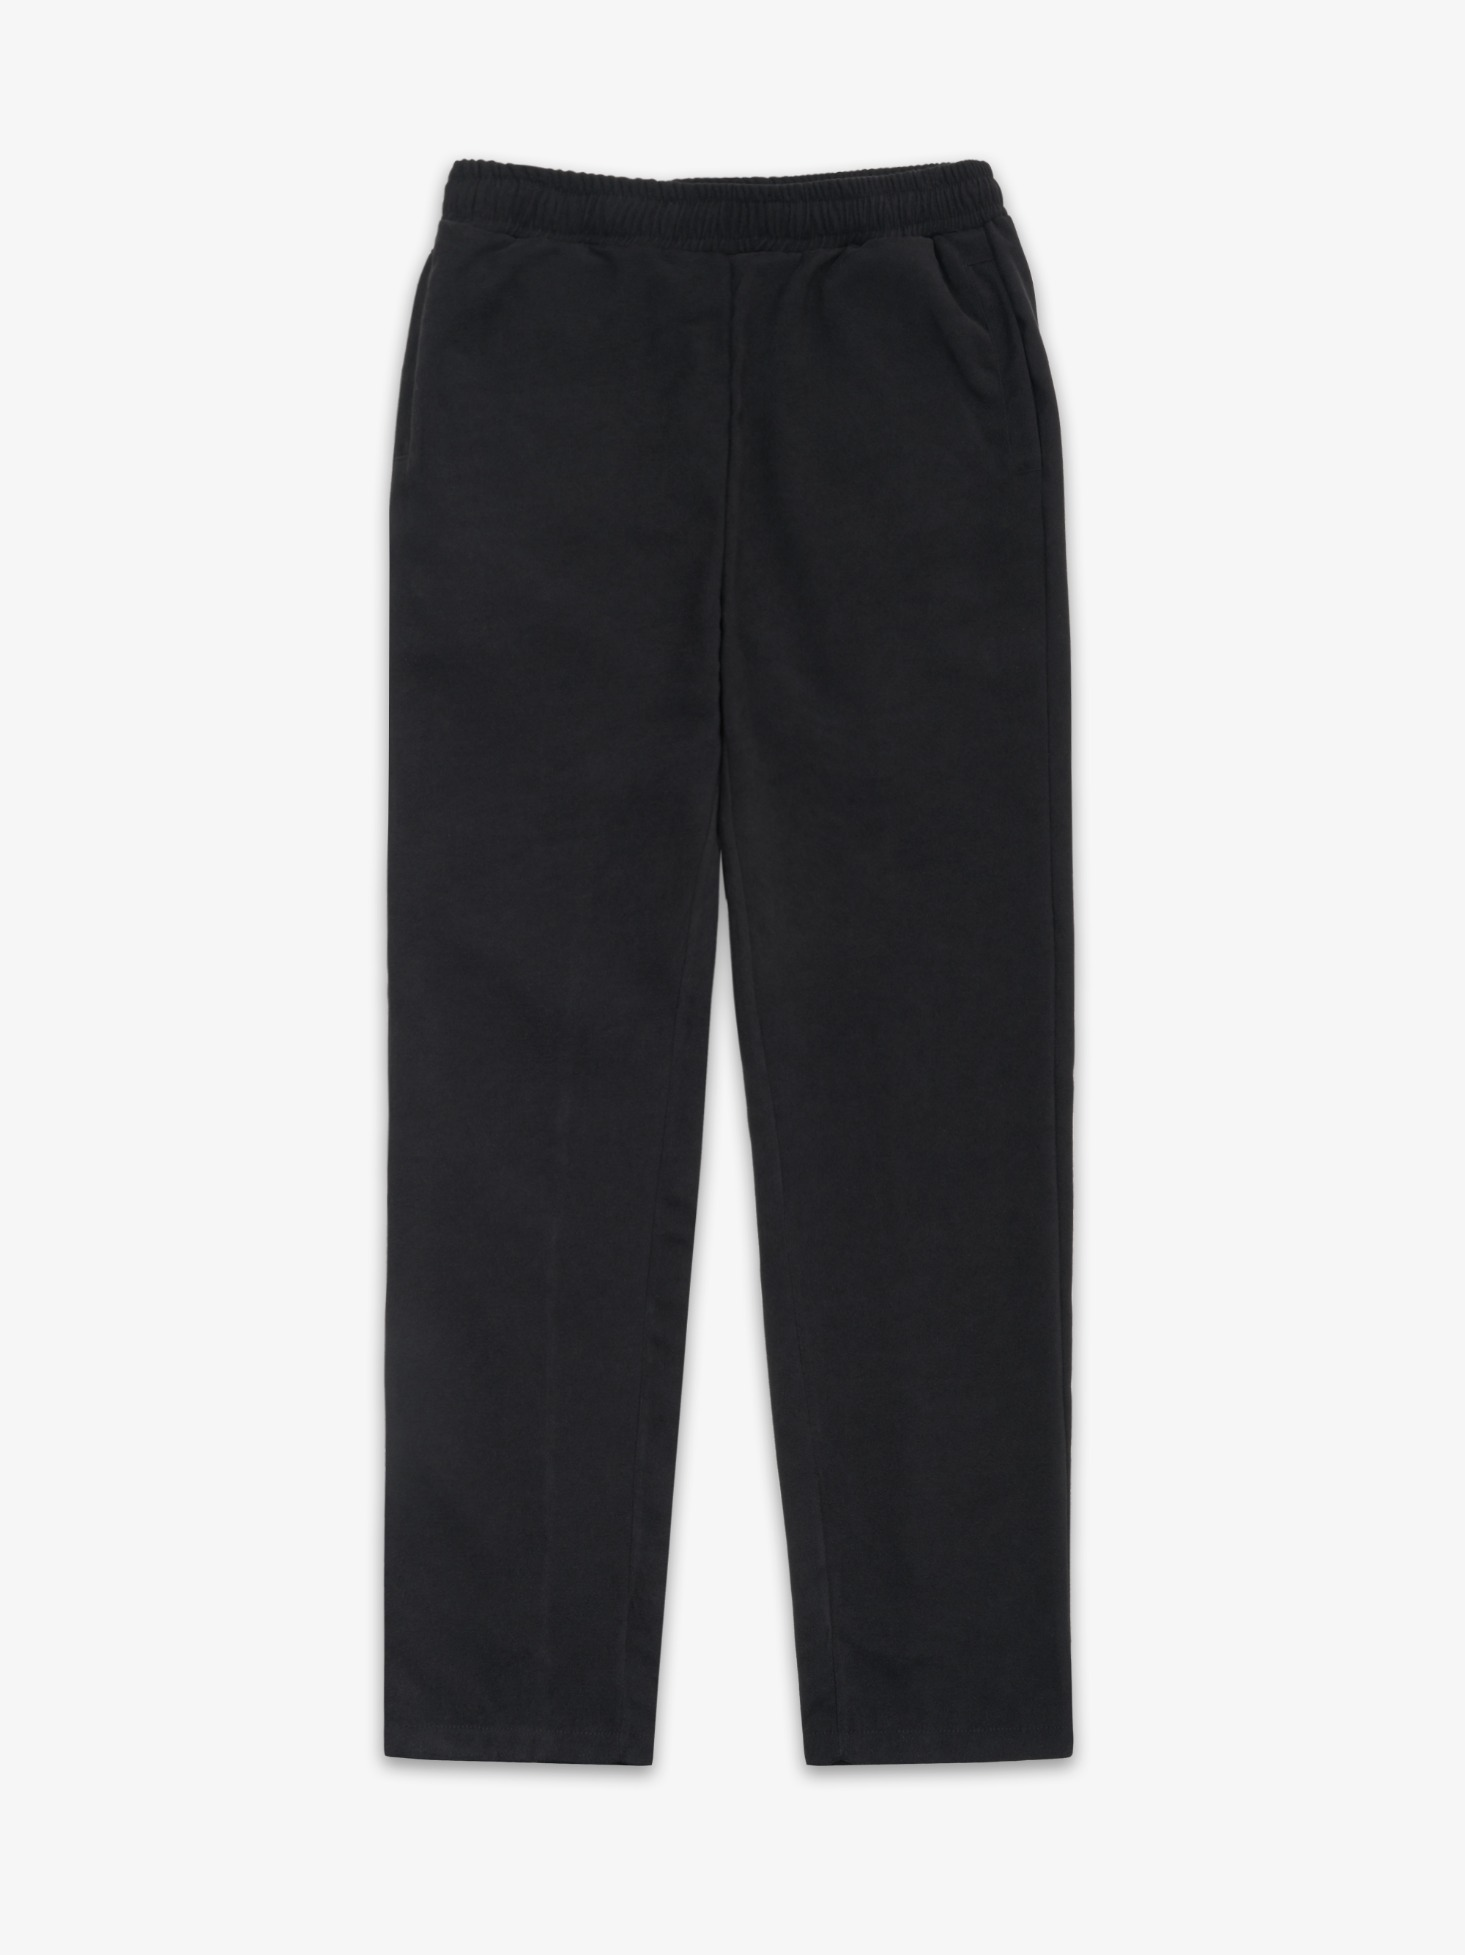 3-DIMENSIONAL PANTS(BLACK SUEDE) 시즌오프 50% 특별할인 89,000원->